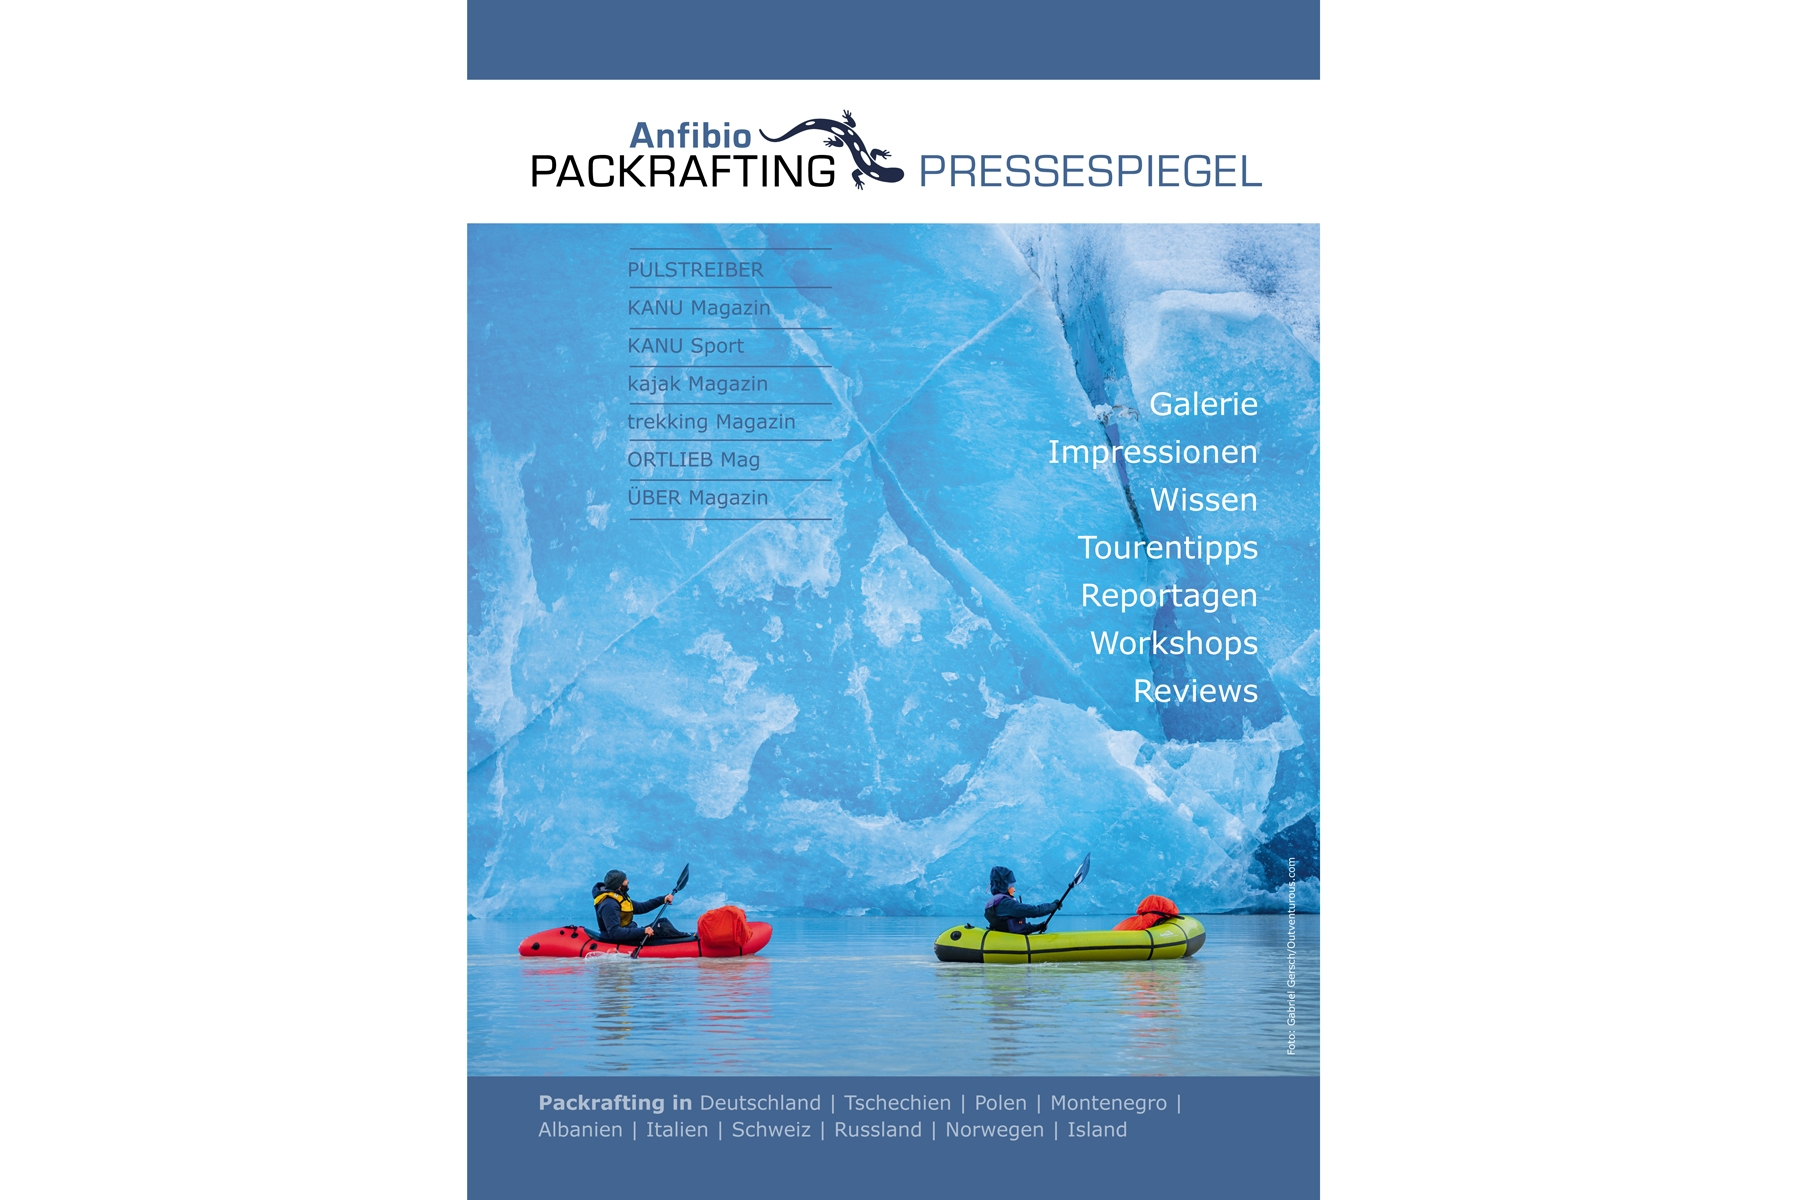 Anfibio Packrafting press cover (German)